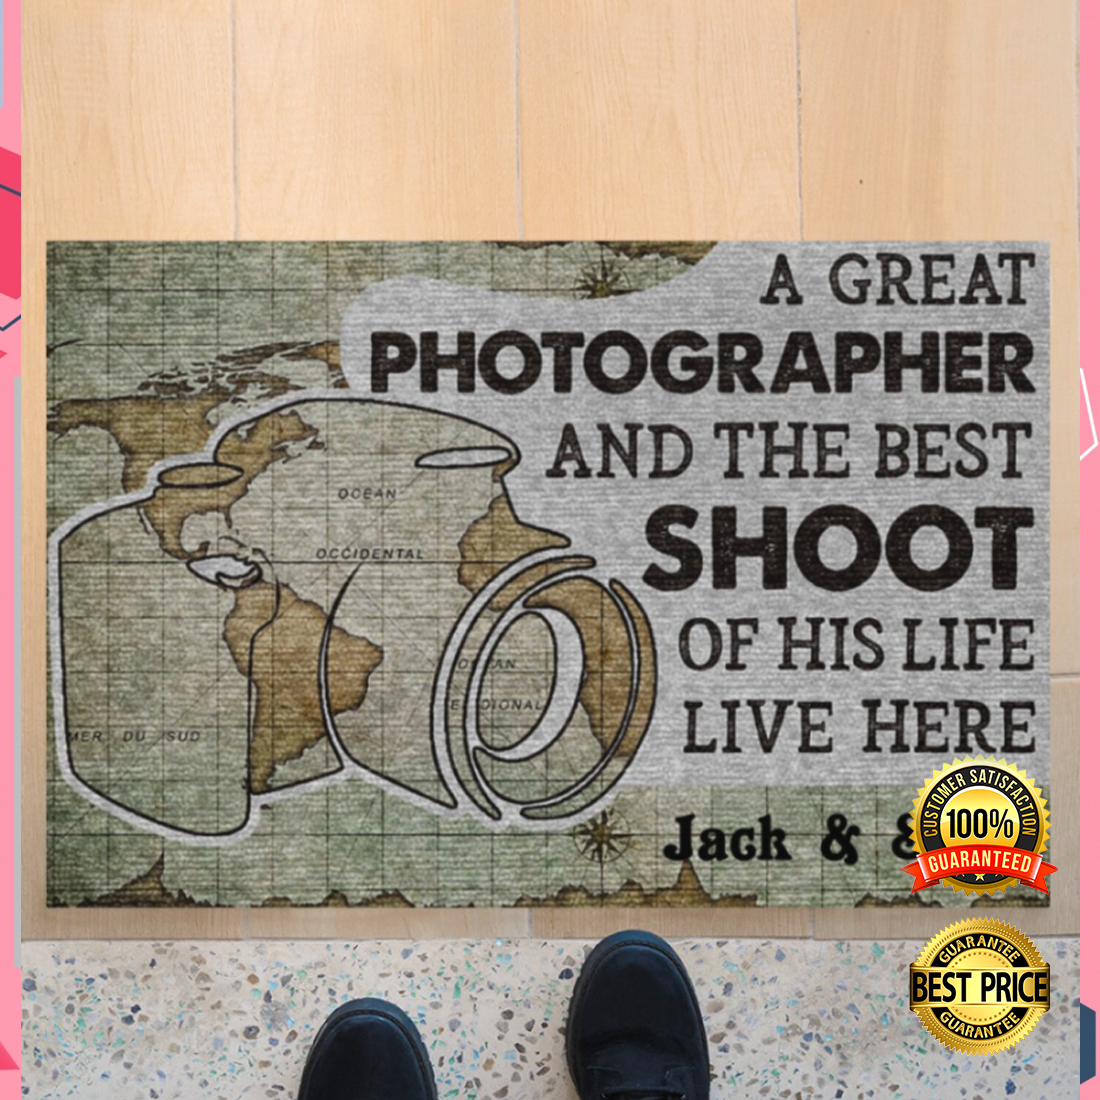 Personalized a great photographer and the best shoot of his life live here doormat 4